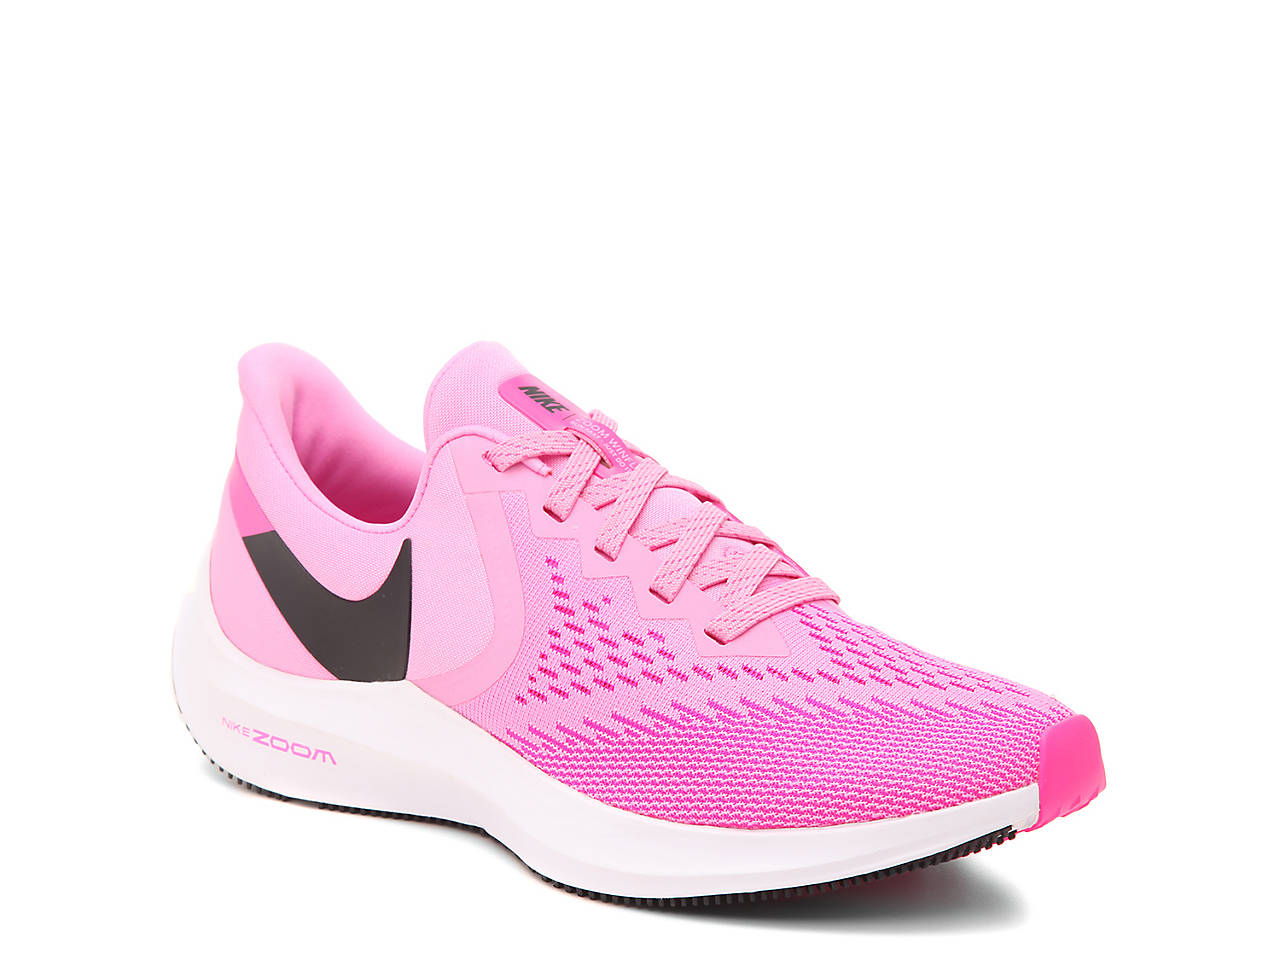 3810d5504c9bd Nike Zoom Winflo 6 Lightweight Running Shoe - Women's Women's Shoes ...